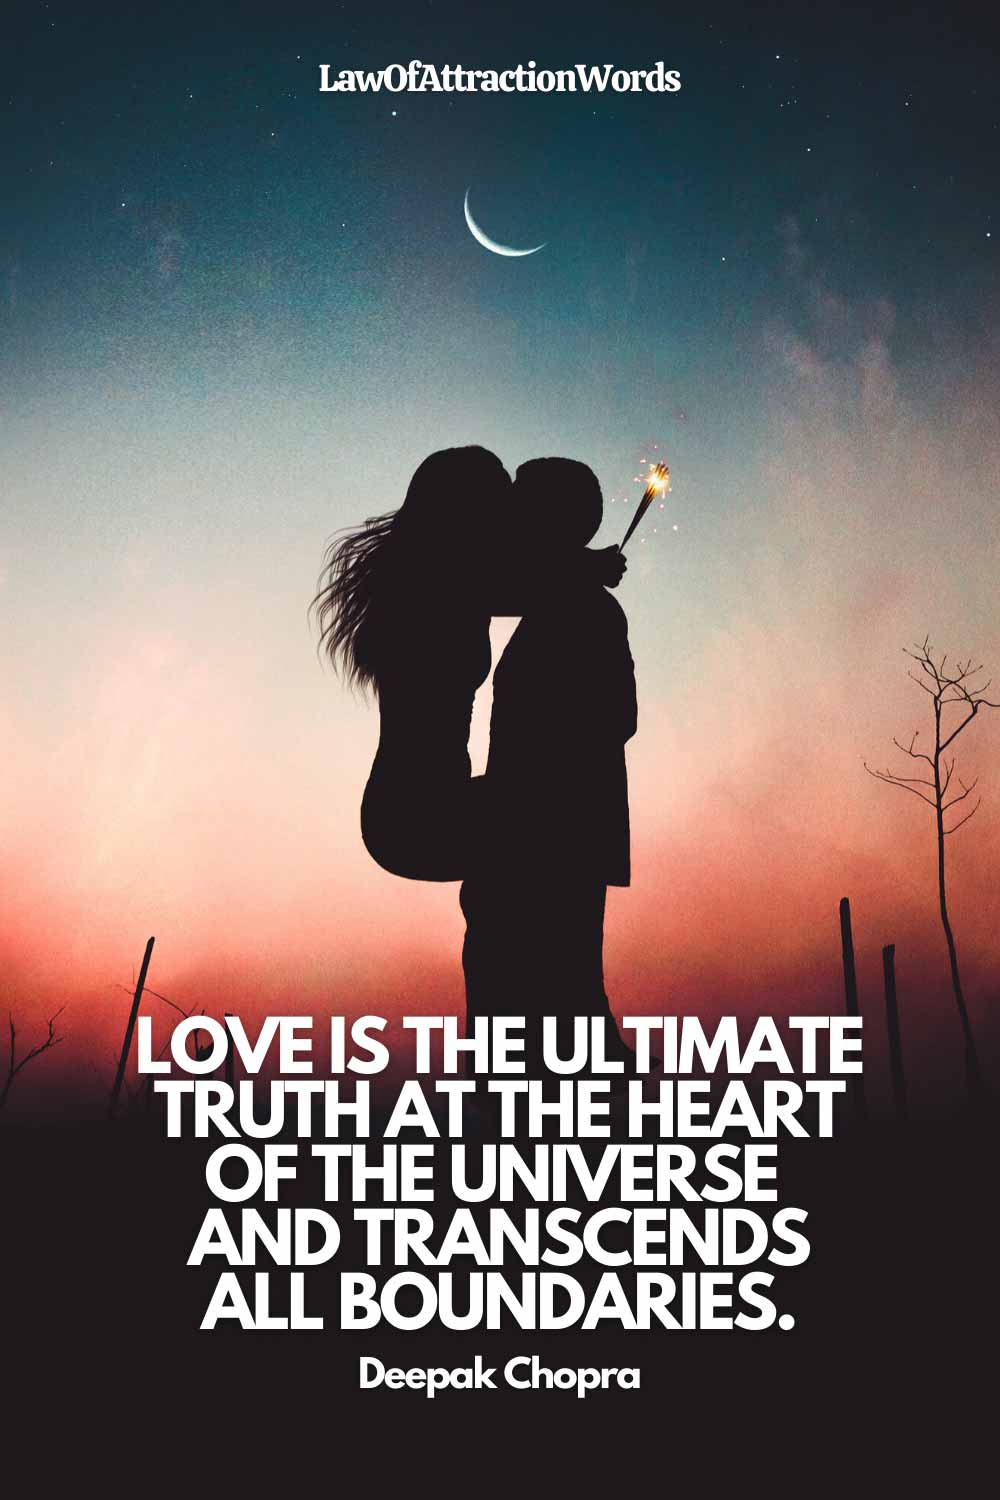 Law Of Attraction Quotes About Love and Trust